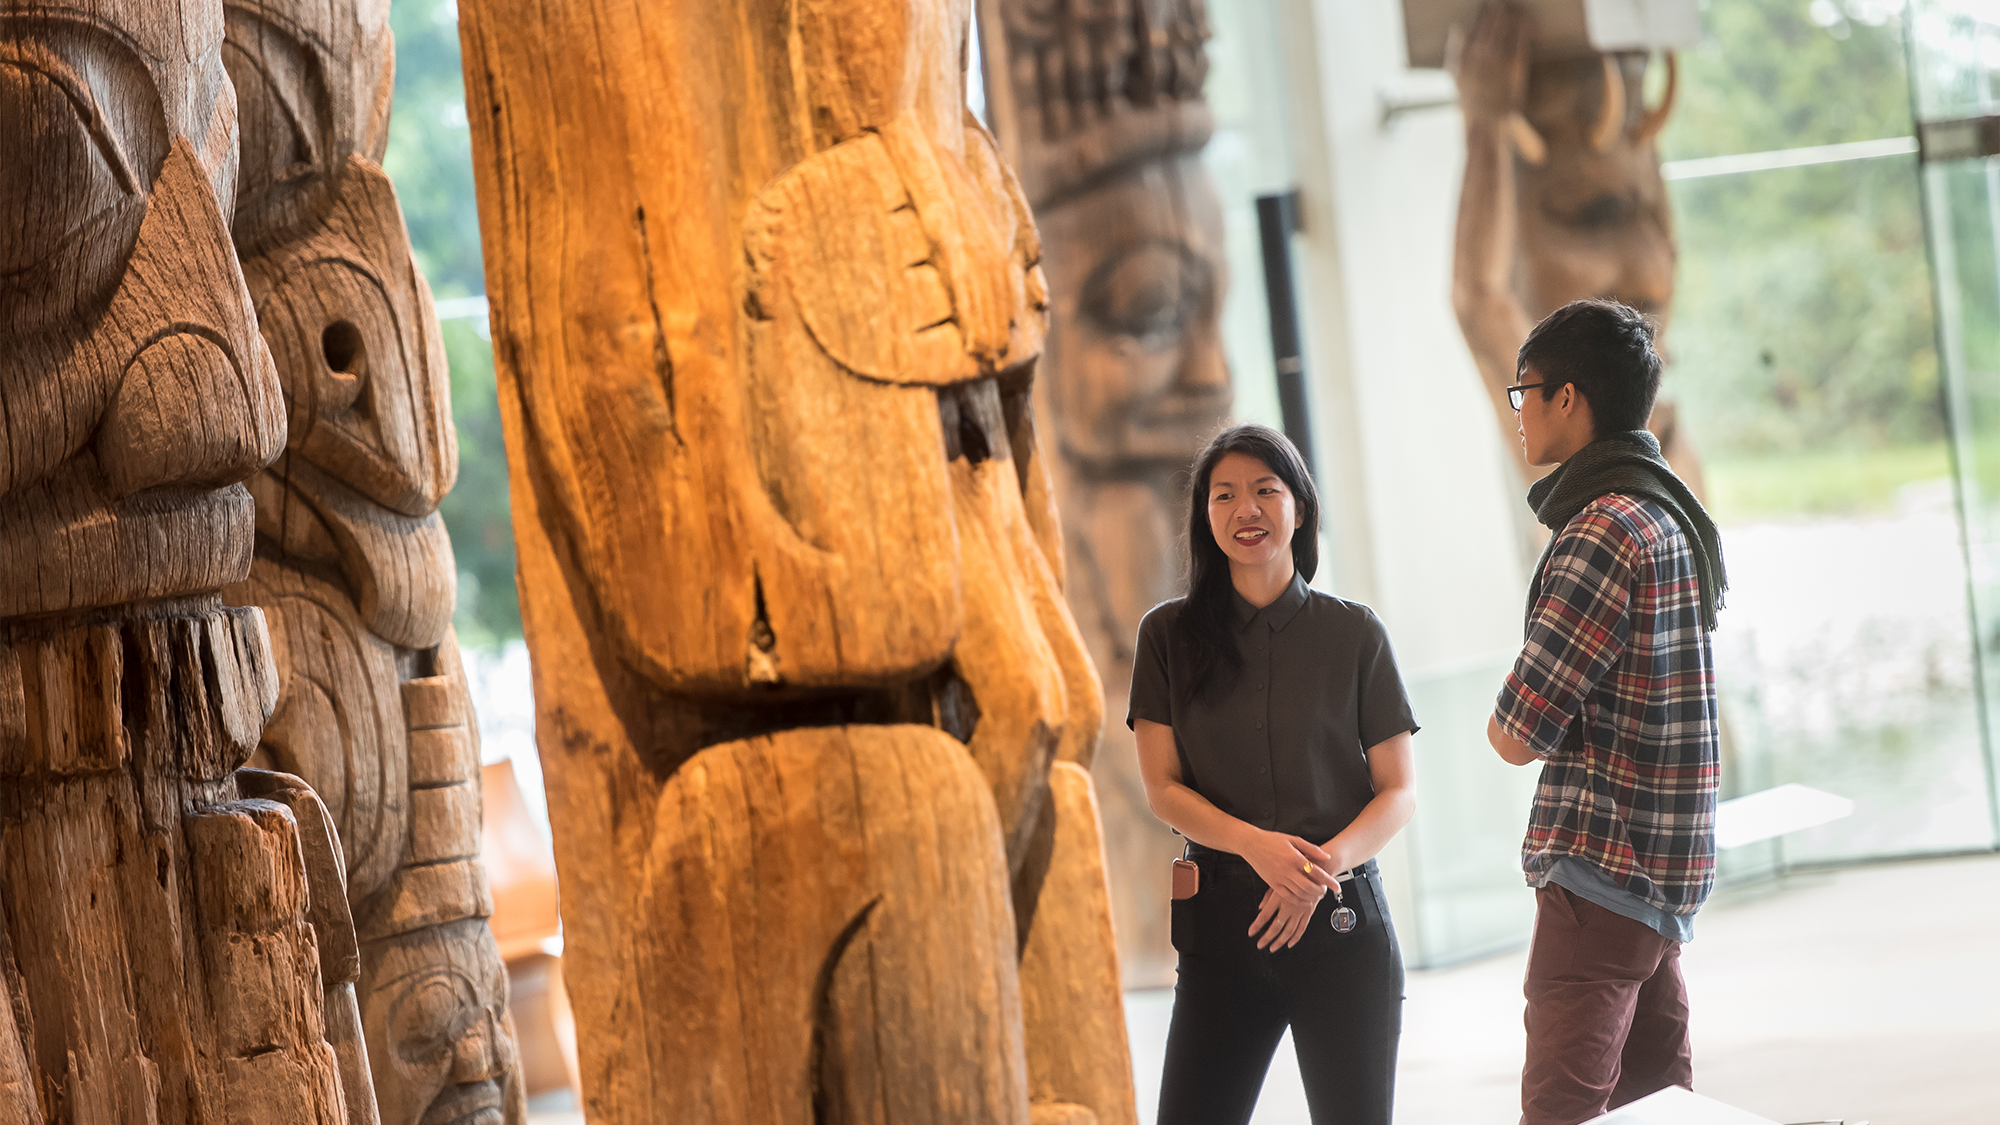 Students in discussion standing inside UBC Museum of Anthropology.